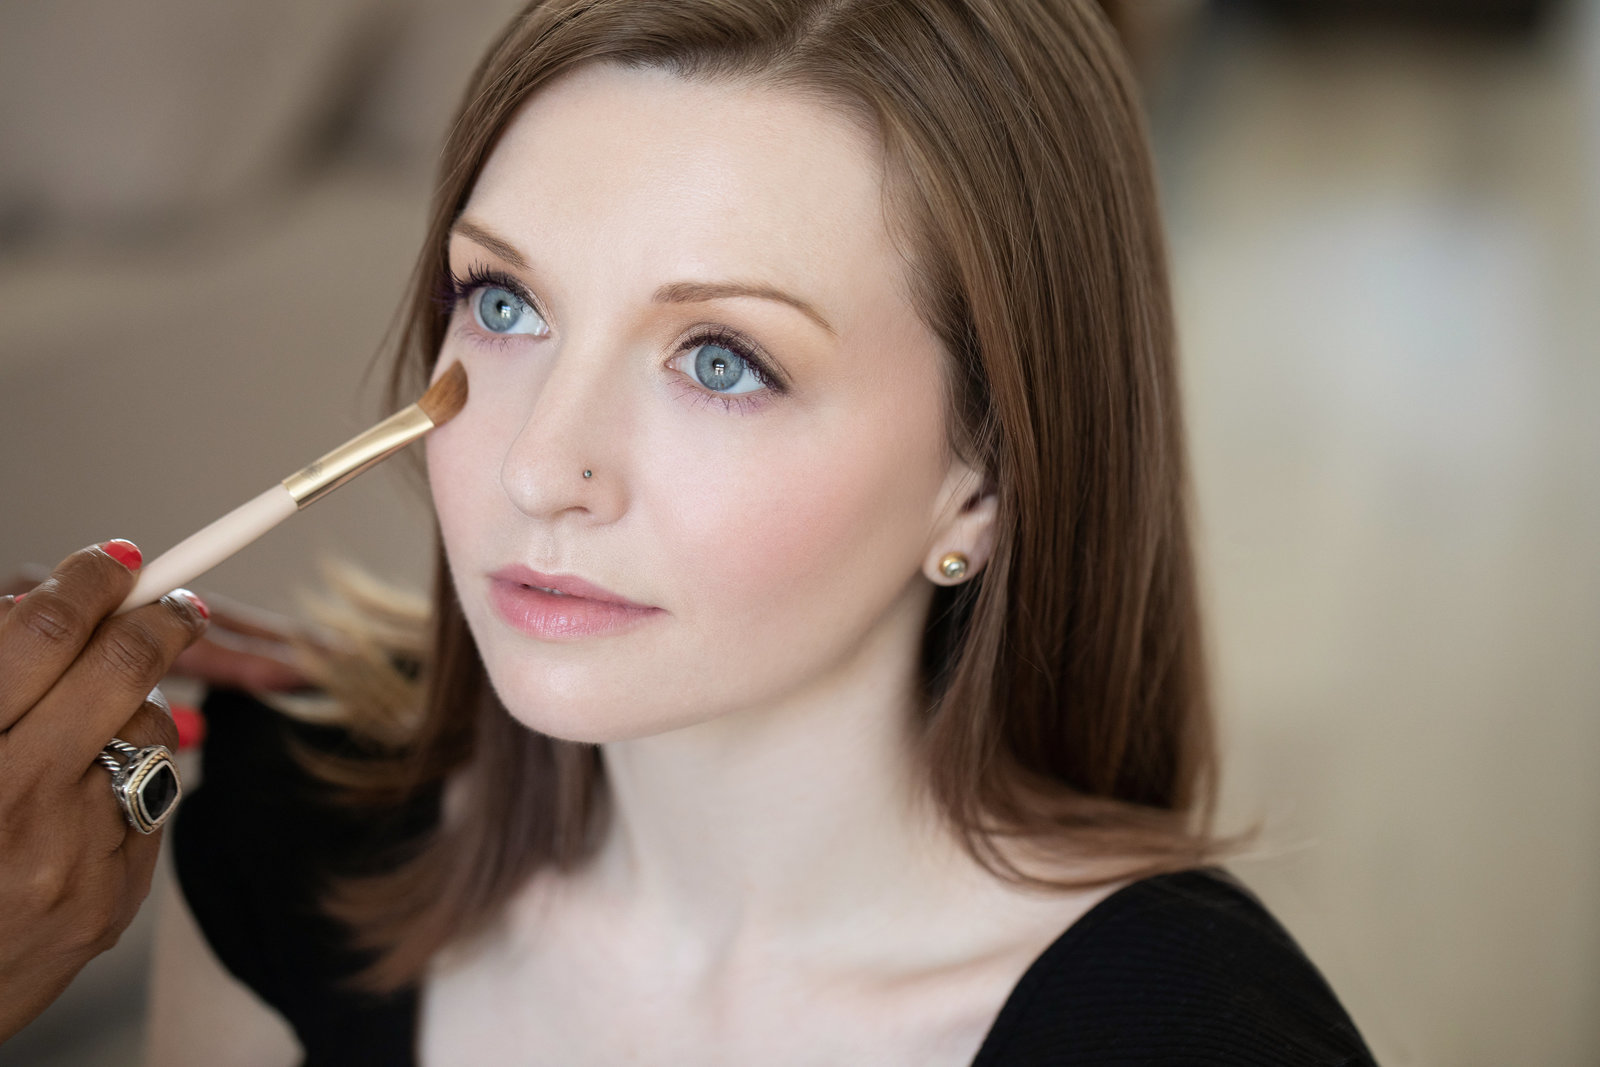 Makeup artist applying make up to young women's undereye